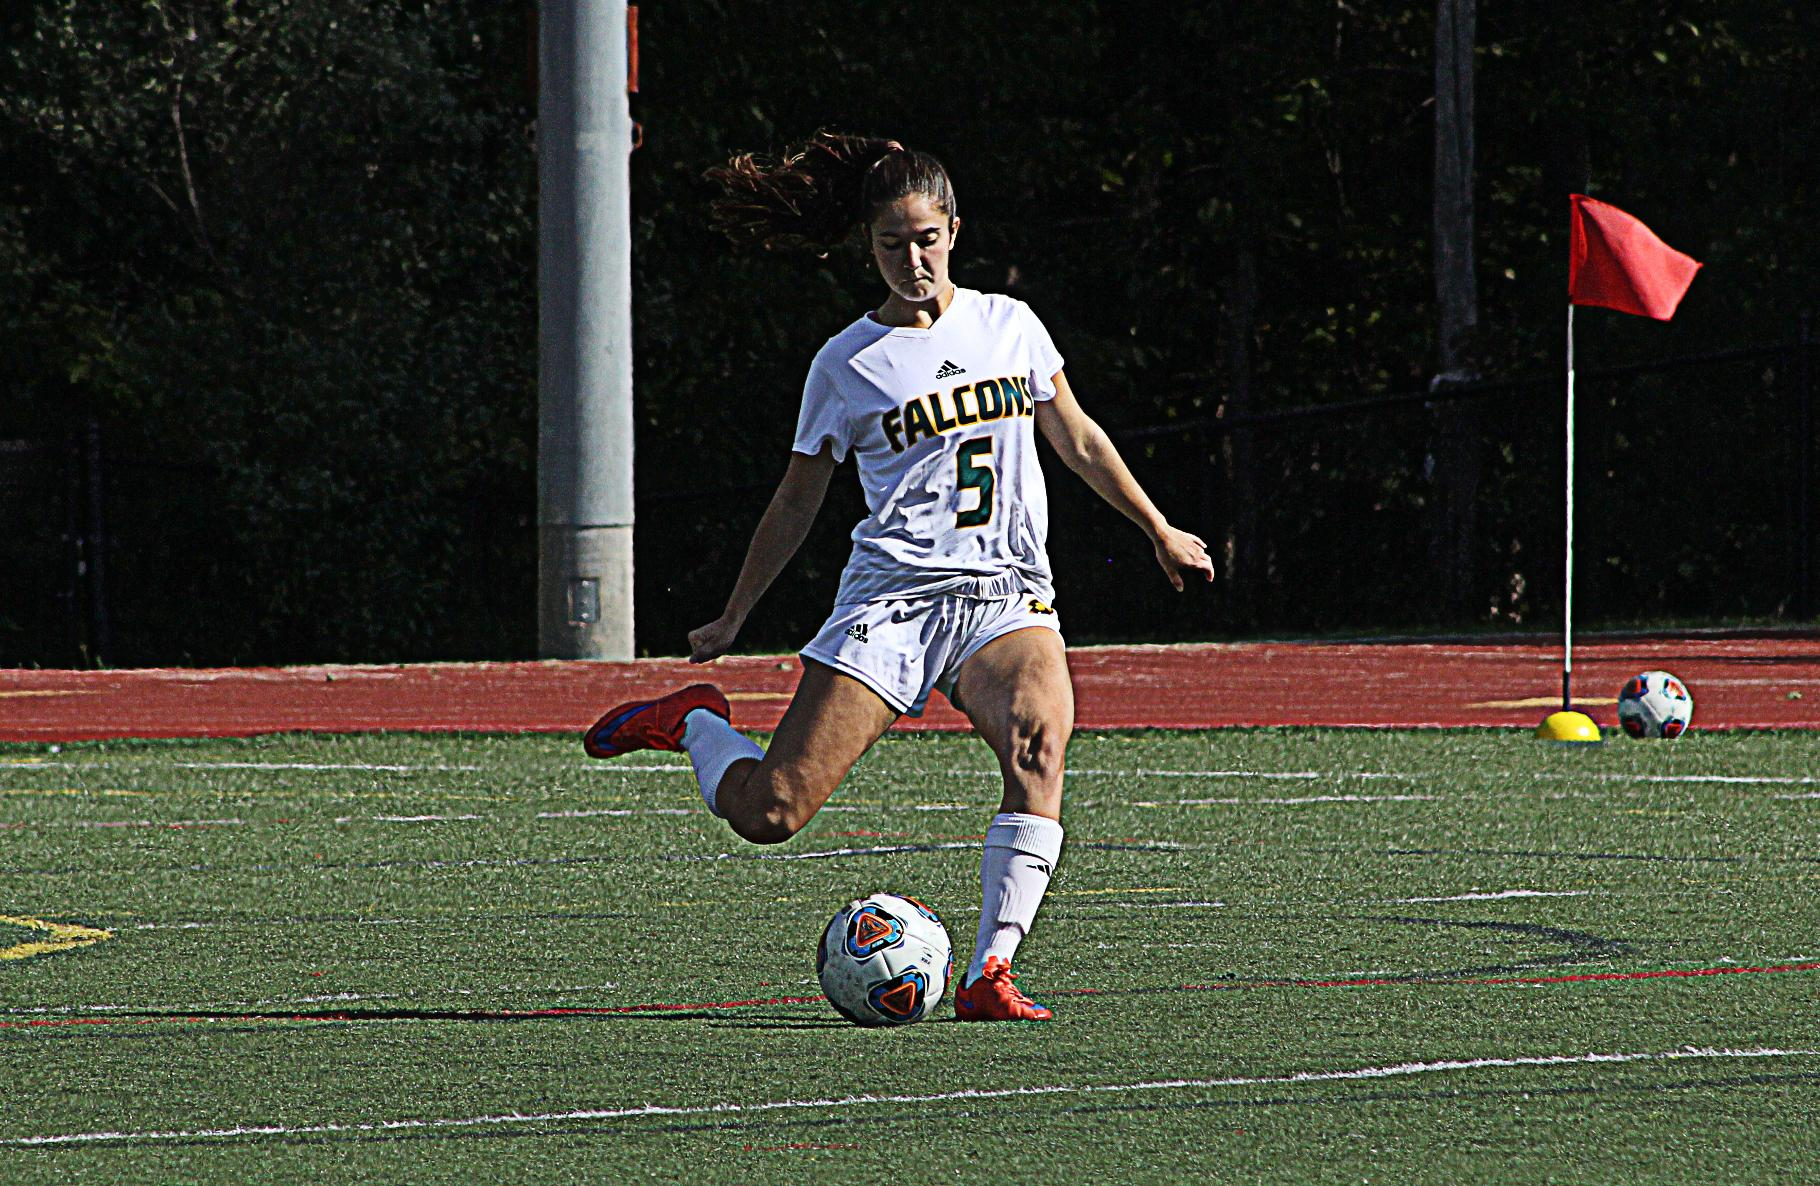 Fitchburg State Nipped By Framingham State, 3-2